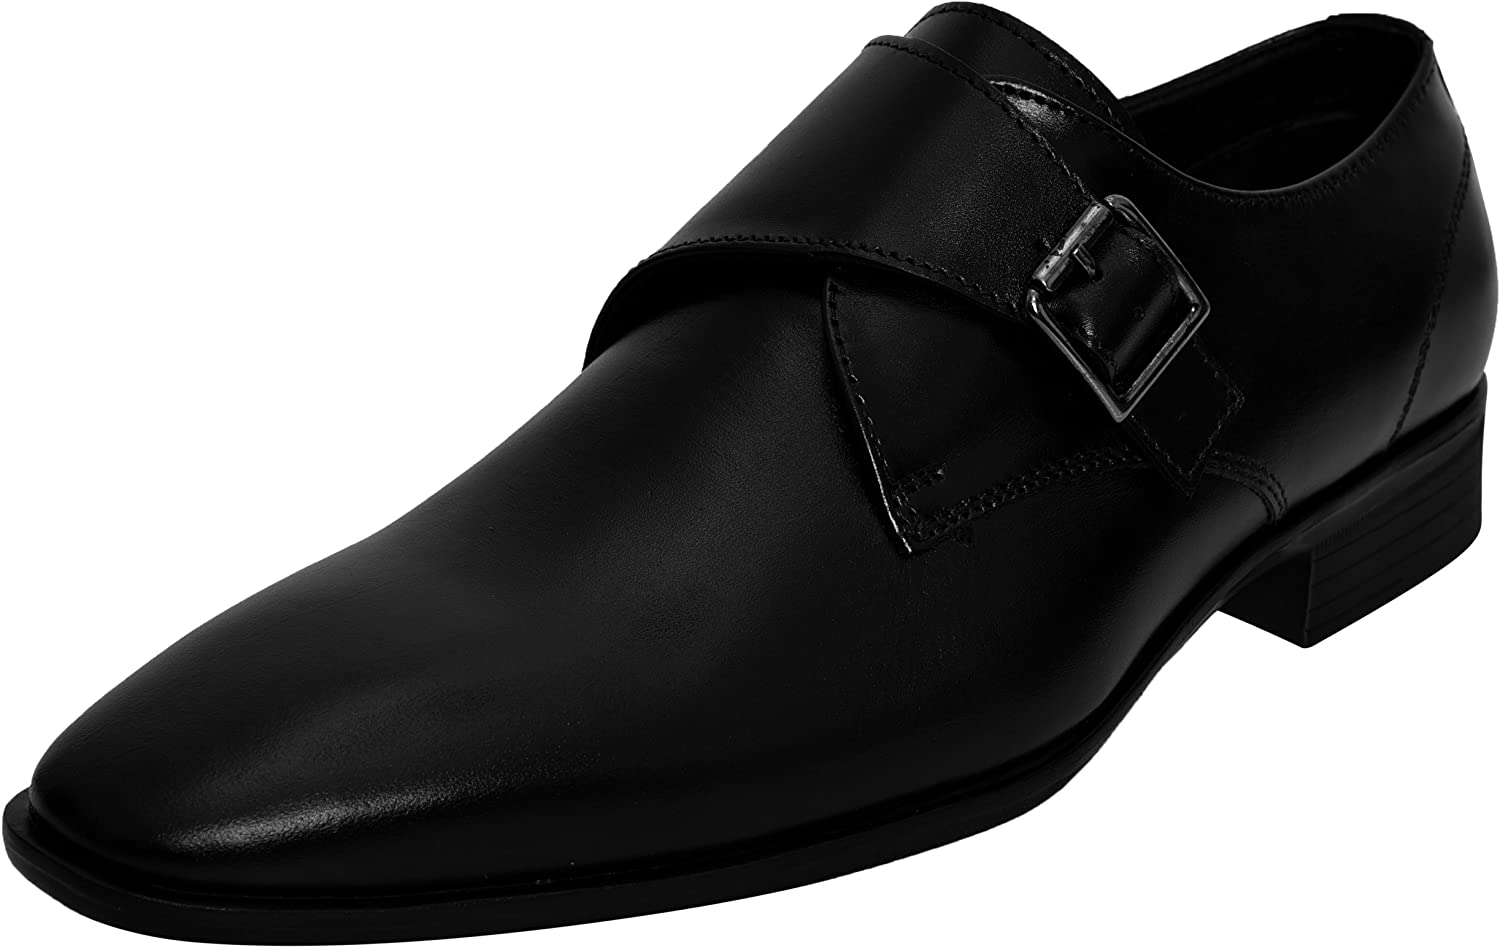 Dolphin Miles Genuine Leather Mens Dress shoes - Double Monk Strap Slip On Loafer shoes - Oxford shoes Men